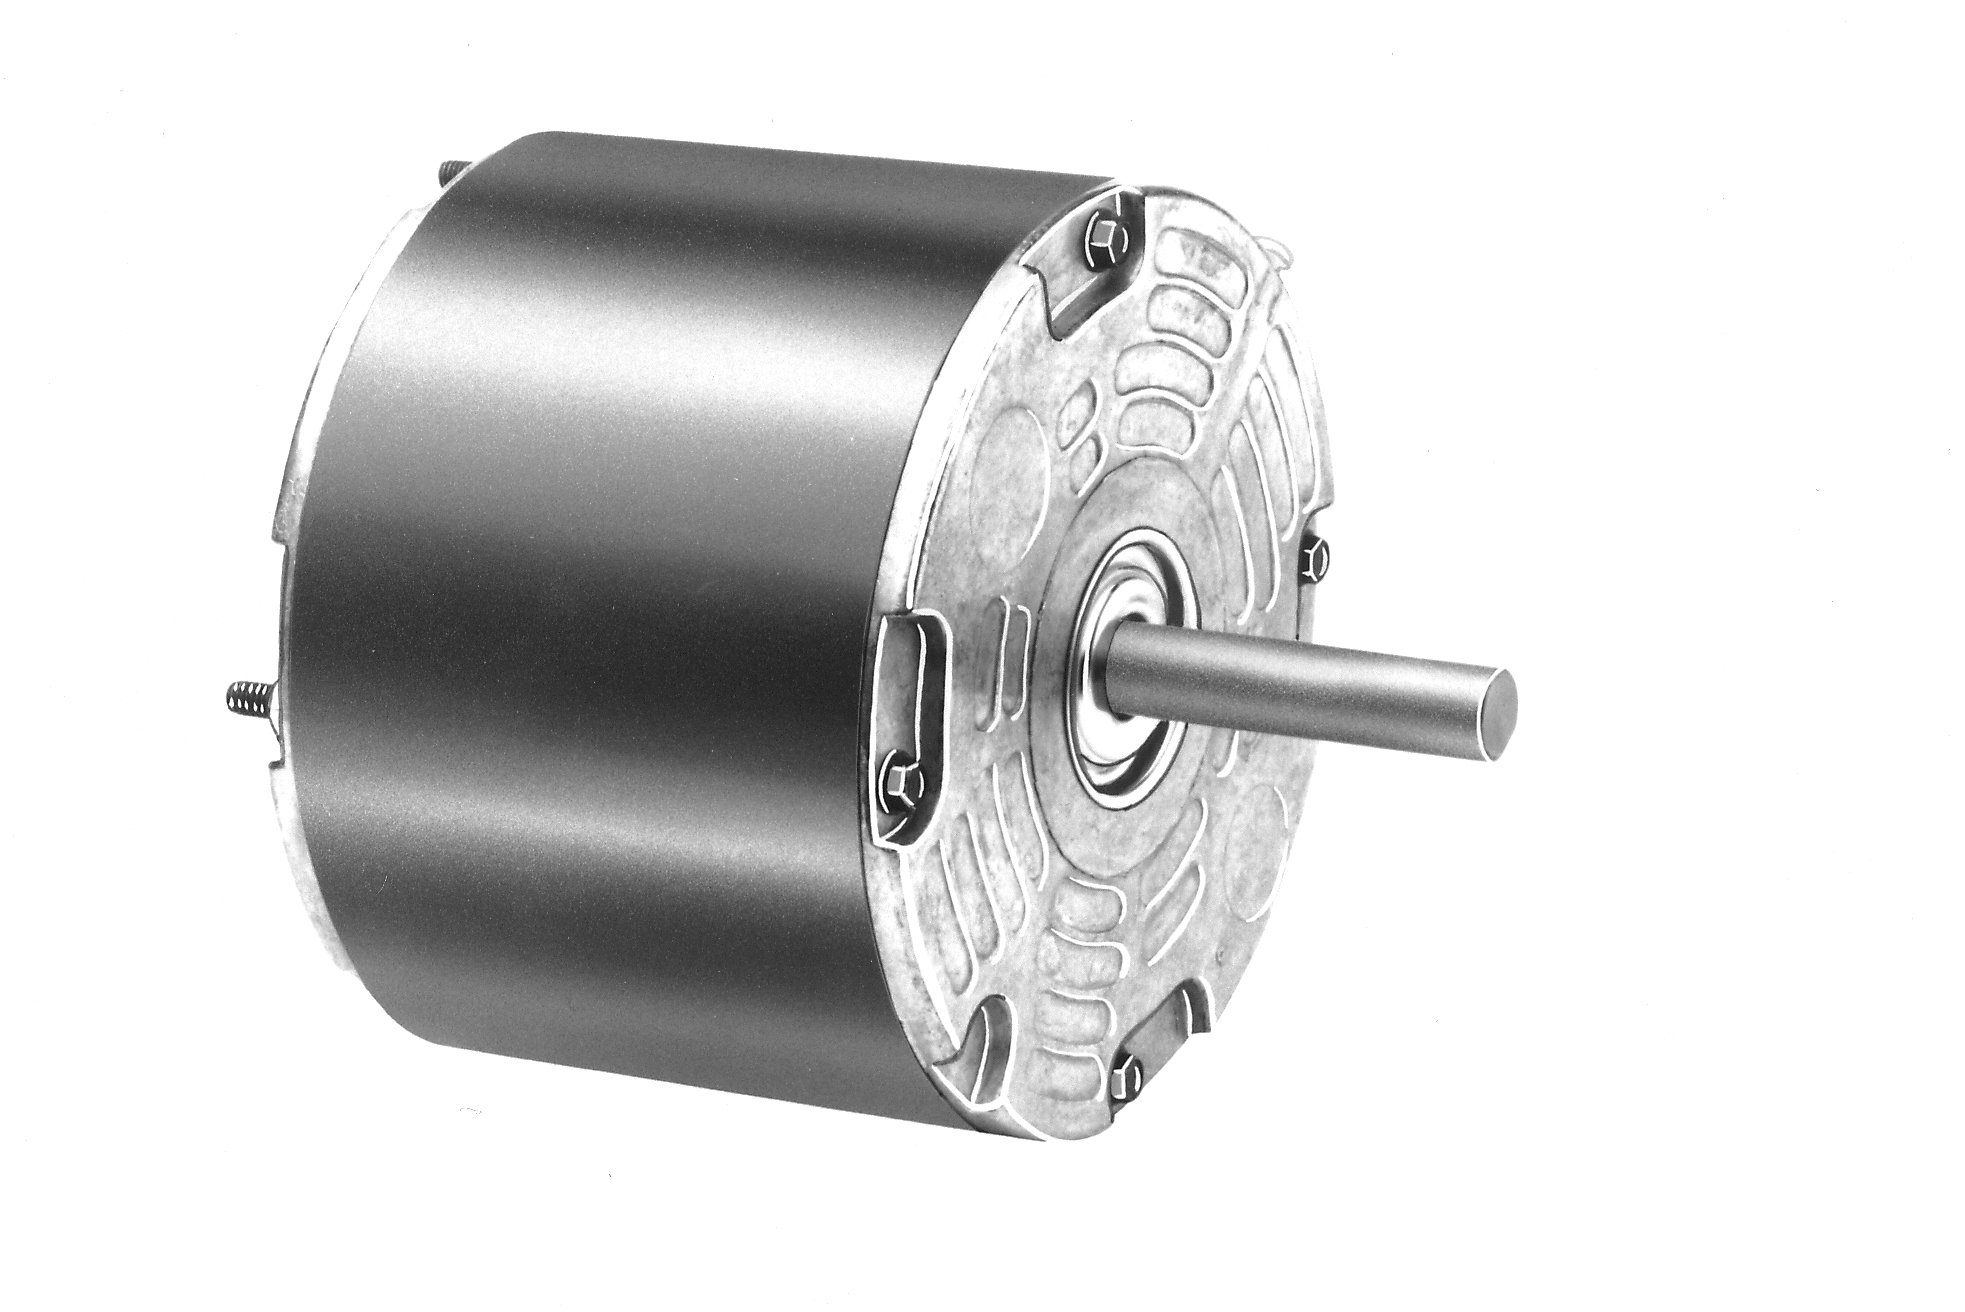 Fasco D1071 5'' Frame Permanent Split Capacitor Heil-Quaker Totally Enclosed OEM Replacement Motor with Sleeve Bearing, 1/6HP, 1100rpm, 208-230V, 60 Hz, 0.99amps by Fasco (Image #1)